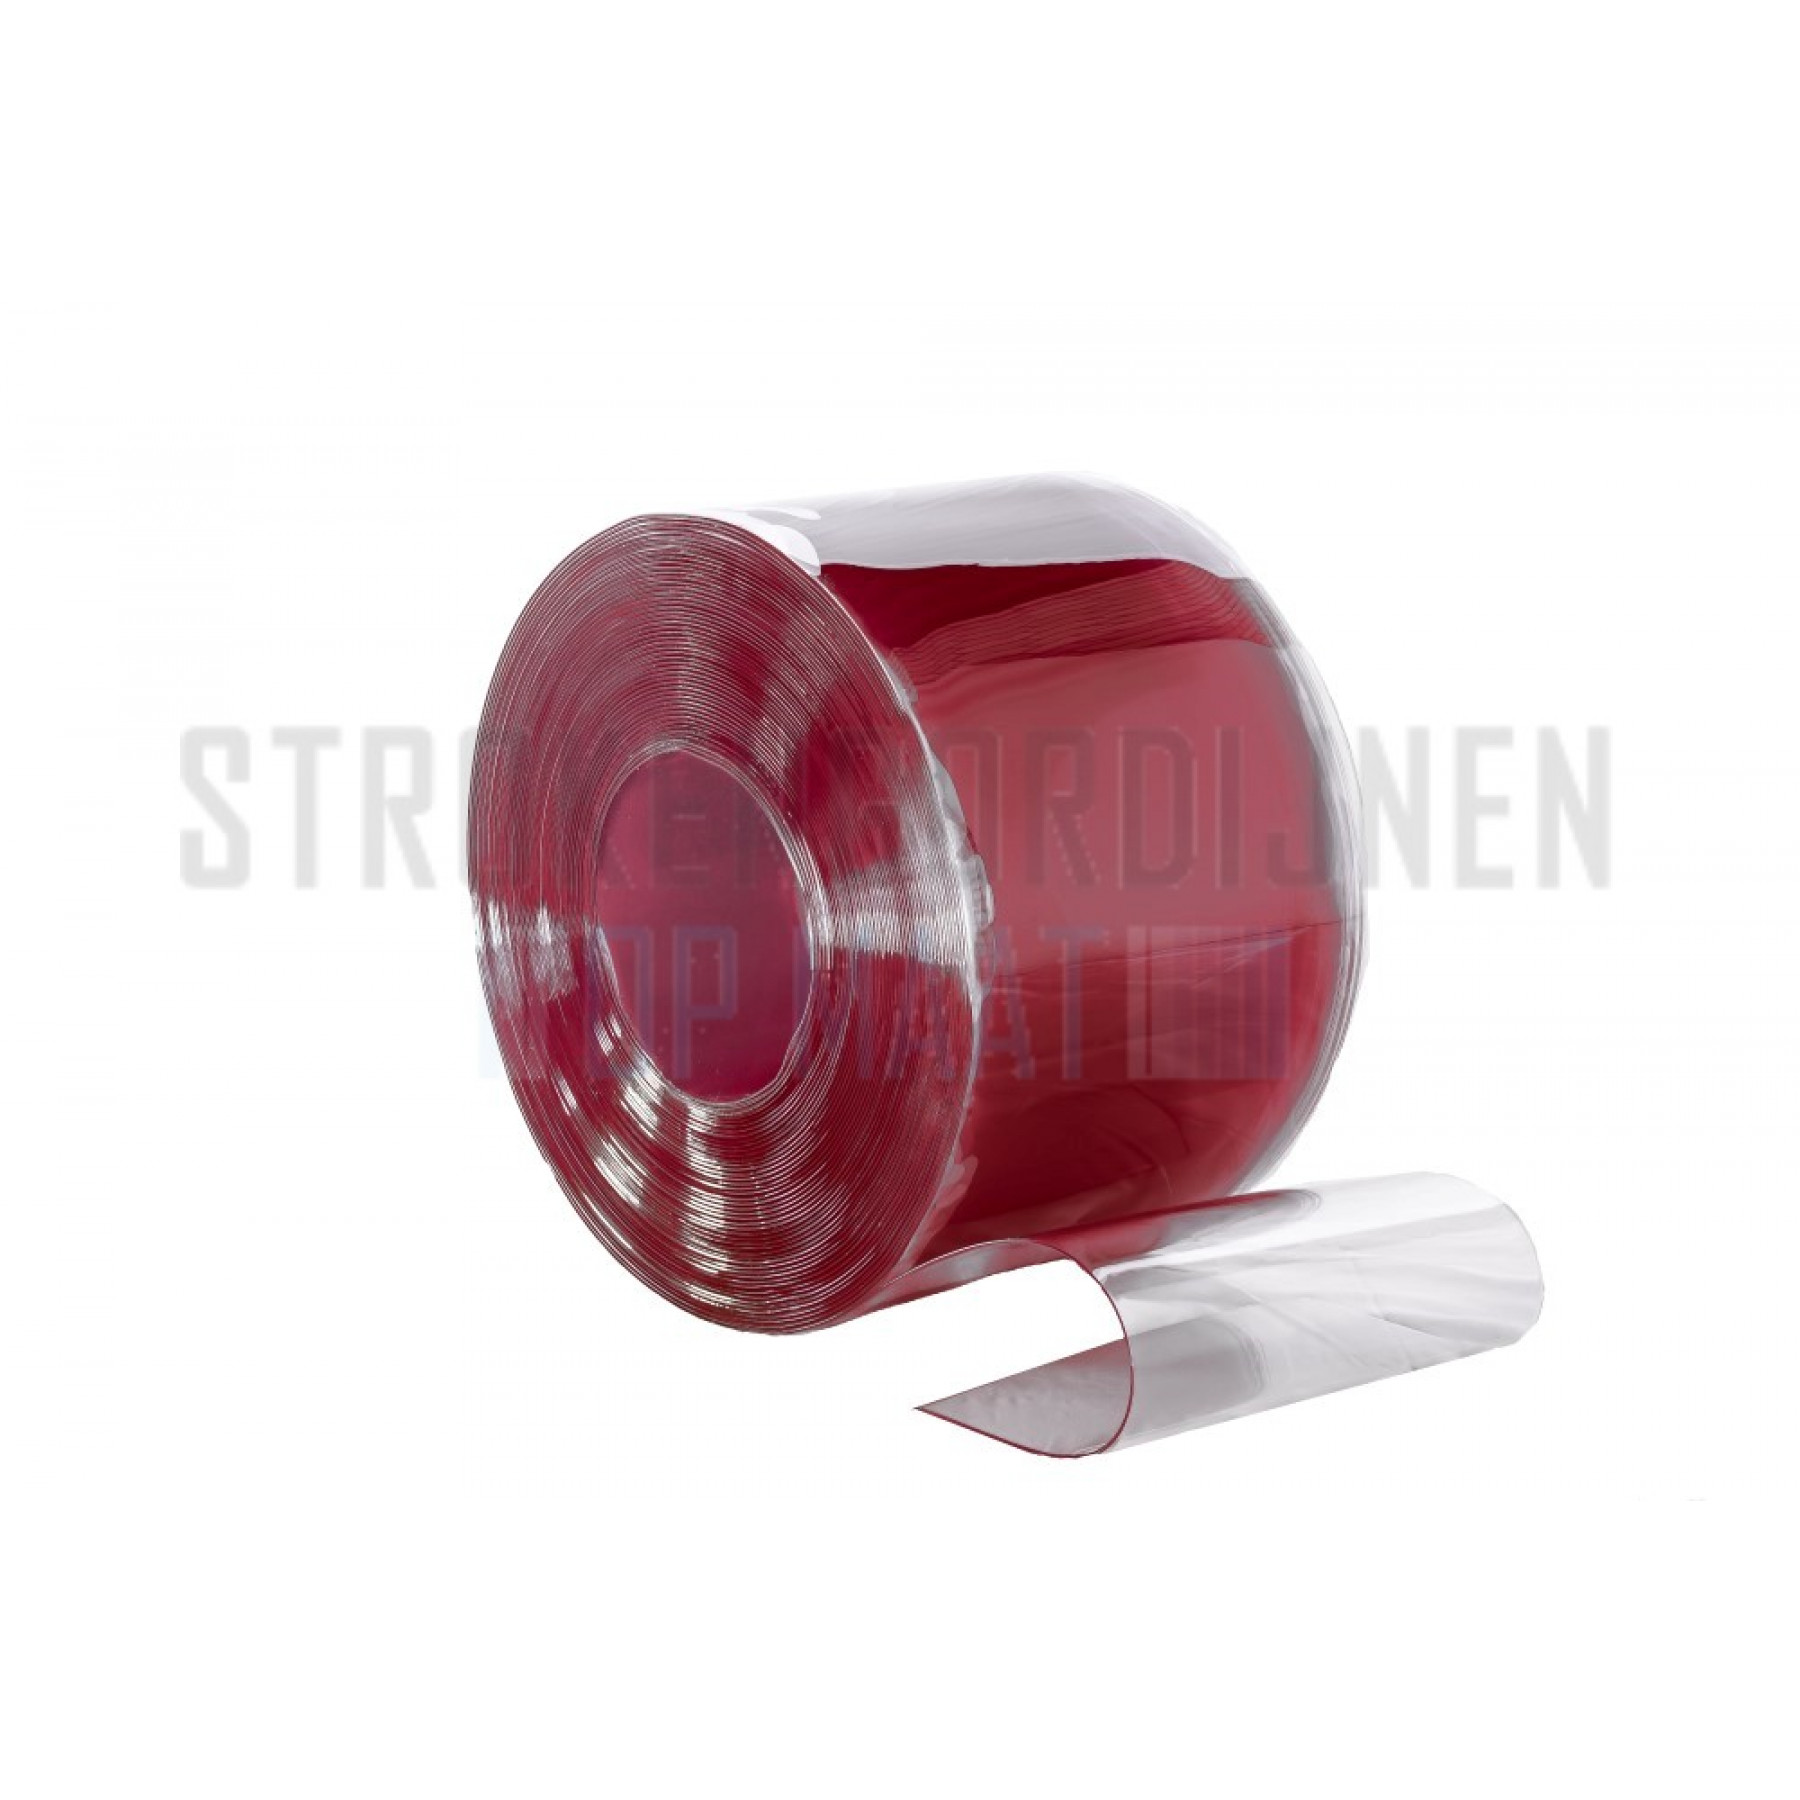 PVC Rolle, 300mm breit, 3mm dick, 50 Meter lang, Farbe Rot, transparent